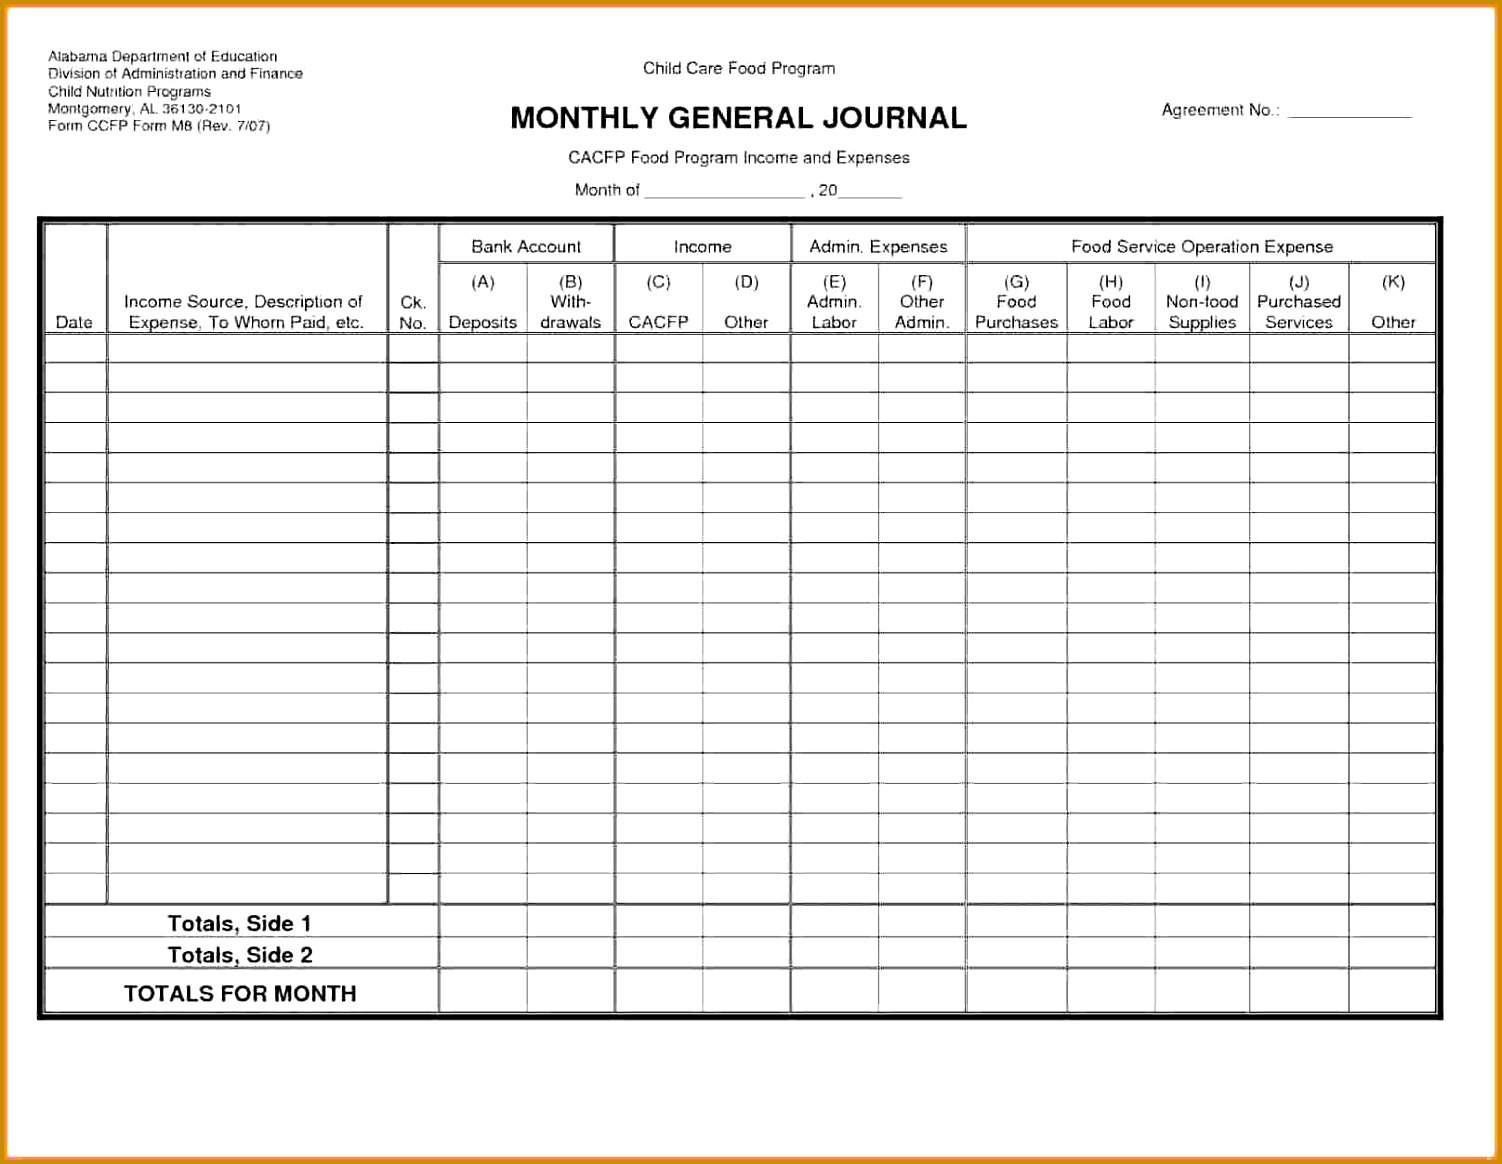 stock ledger template excelock ledger template word or excel free ledger templates general ledger general ledger templates general 11641502